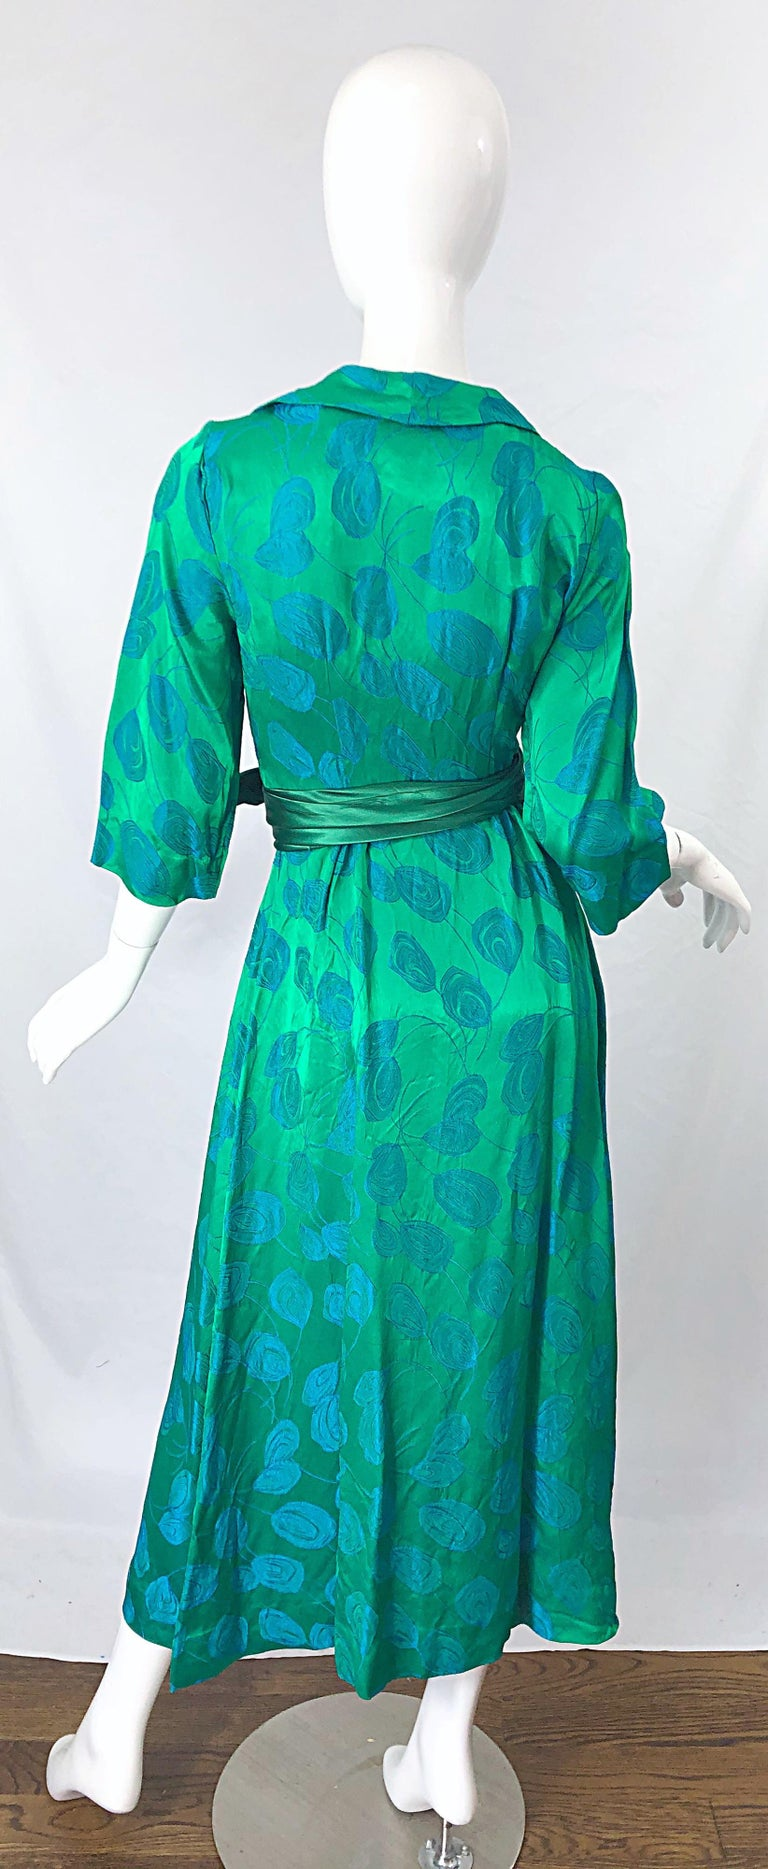 1950s Kelly Green + Blue Flower Print Rayon Rhinestone Vintage 50s Wrap Dress For Sale 7